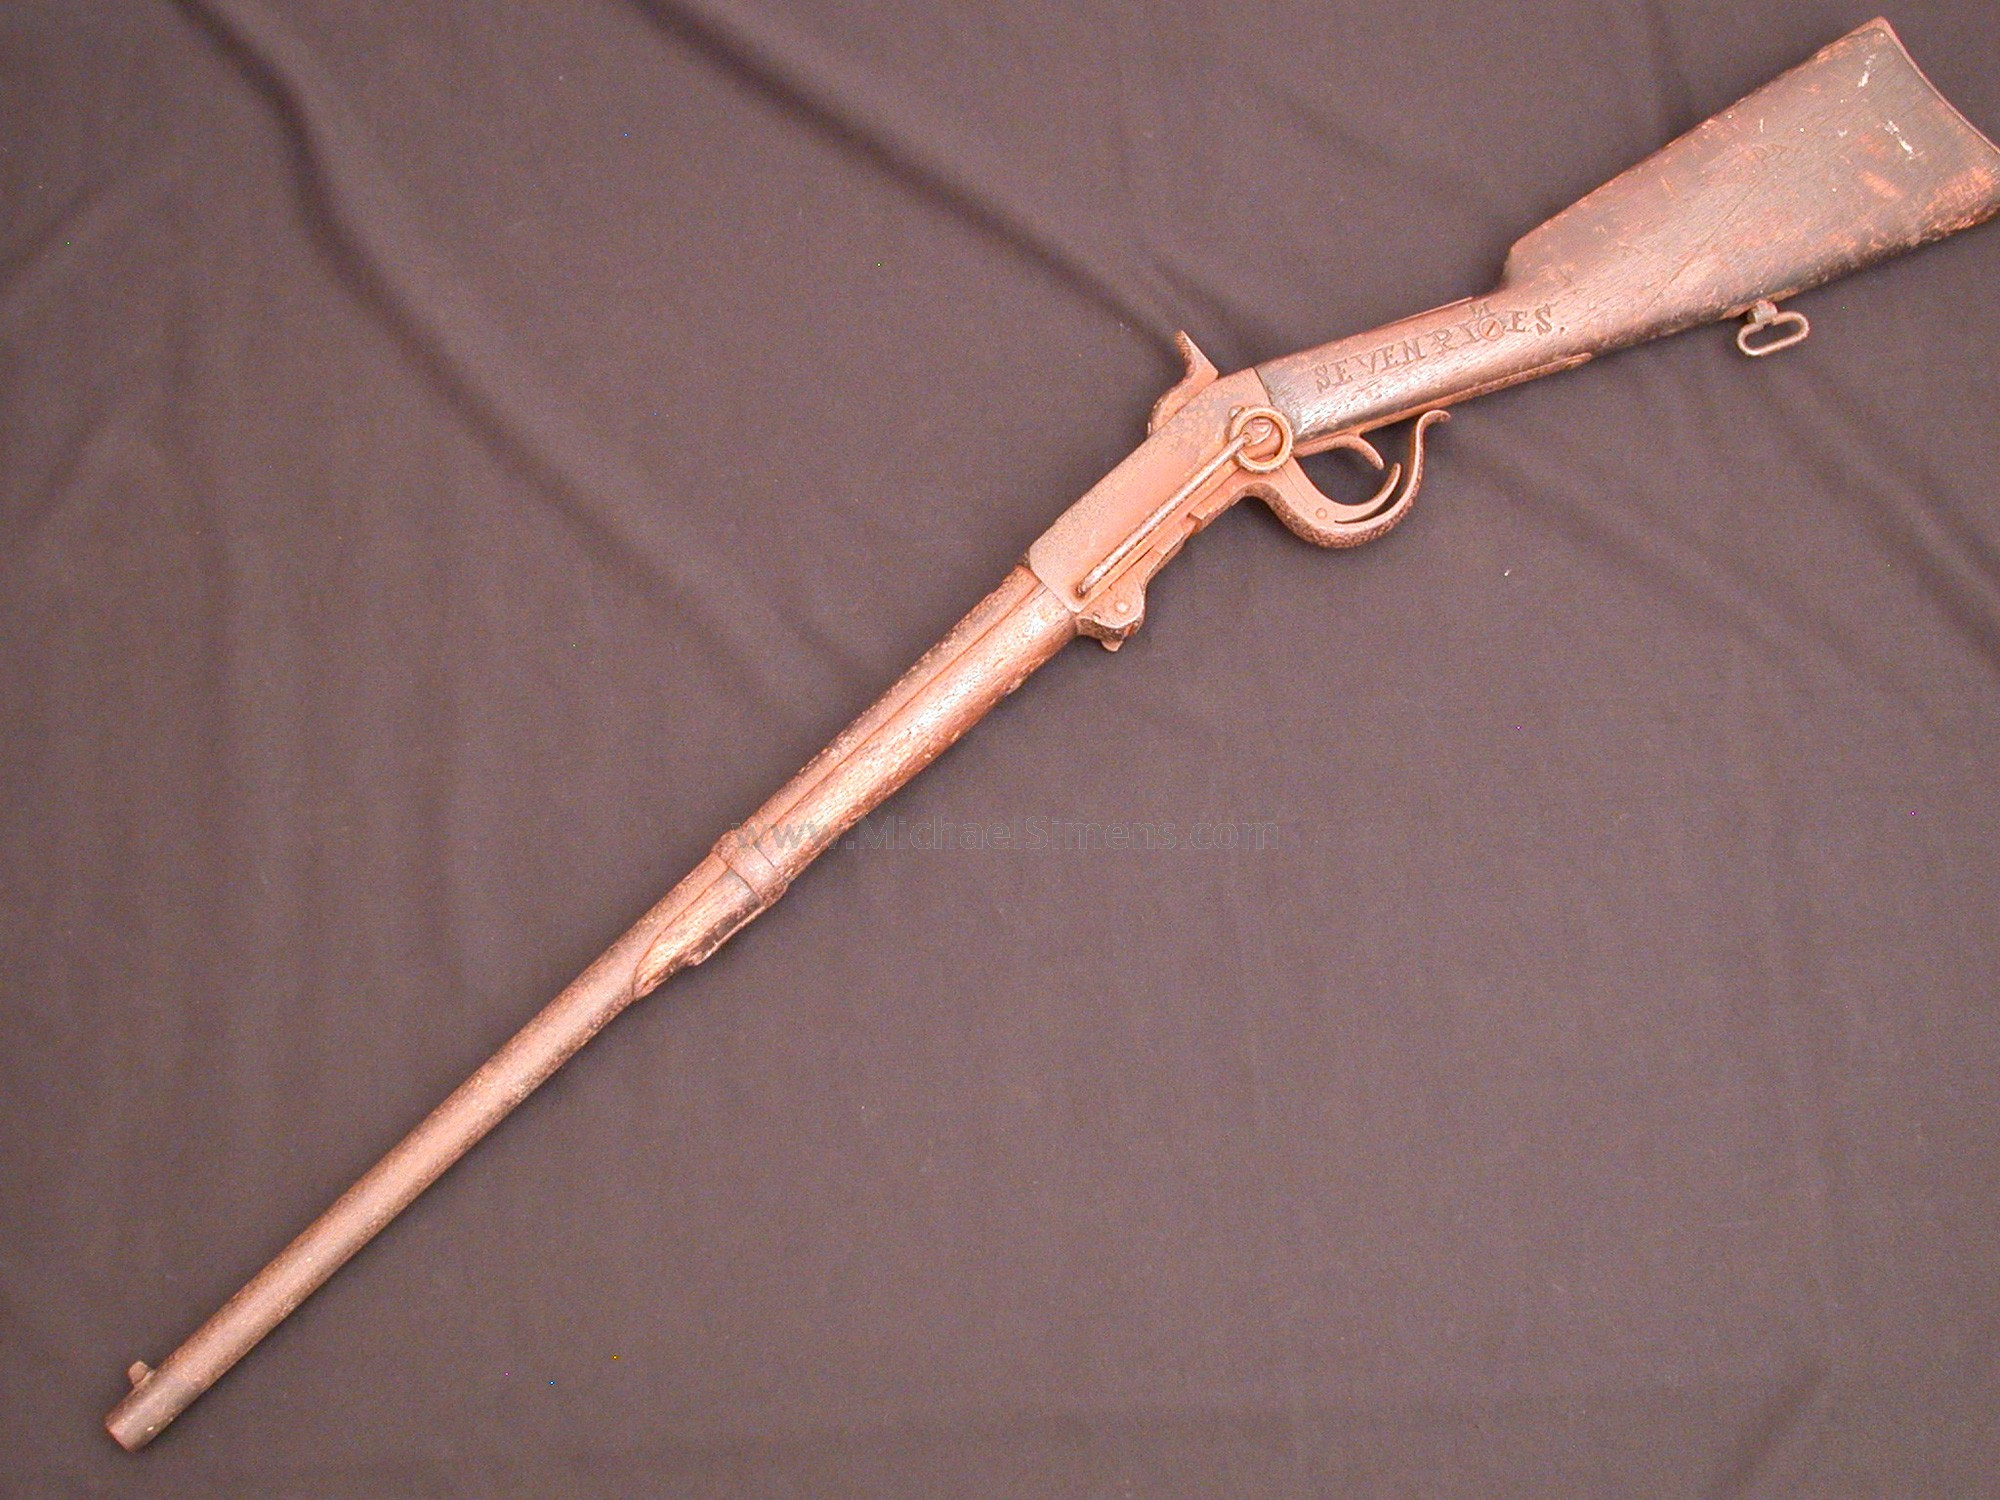 CIVIL WAR BURNSIDE CARBINE, IDENTIFIED TO ALABAMA SOLDIER